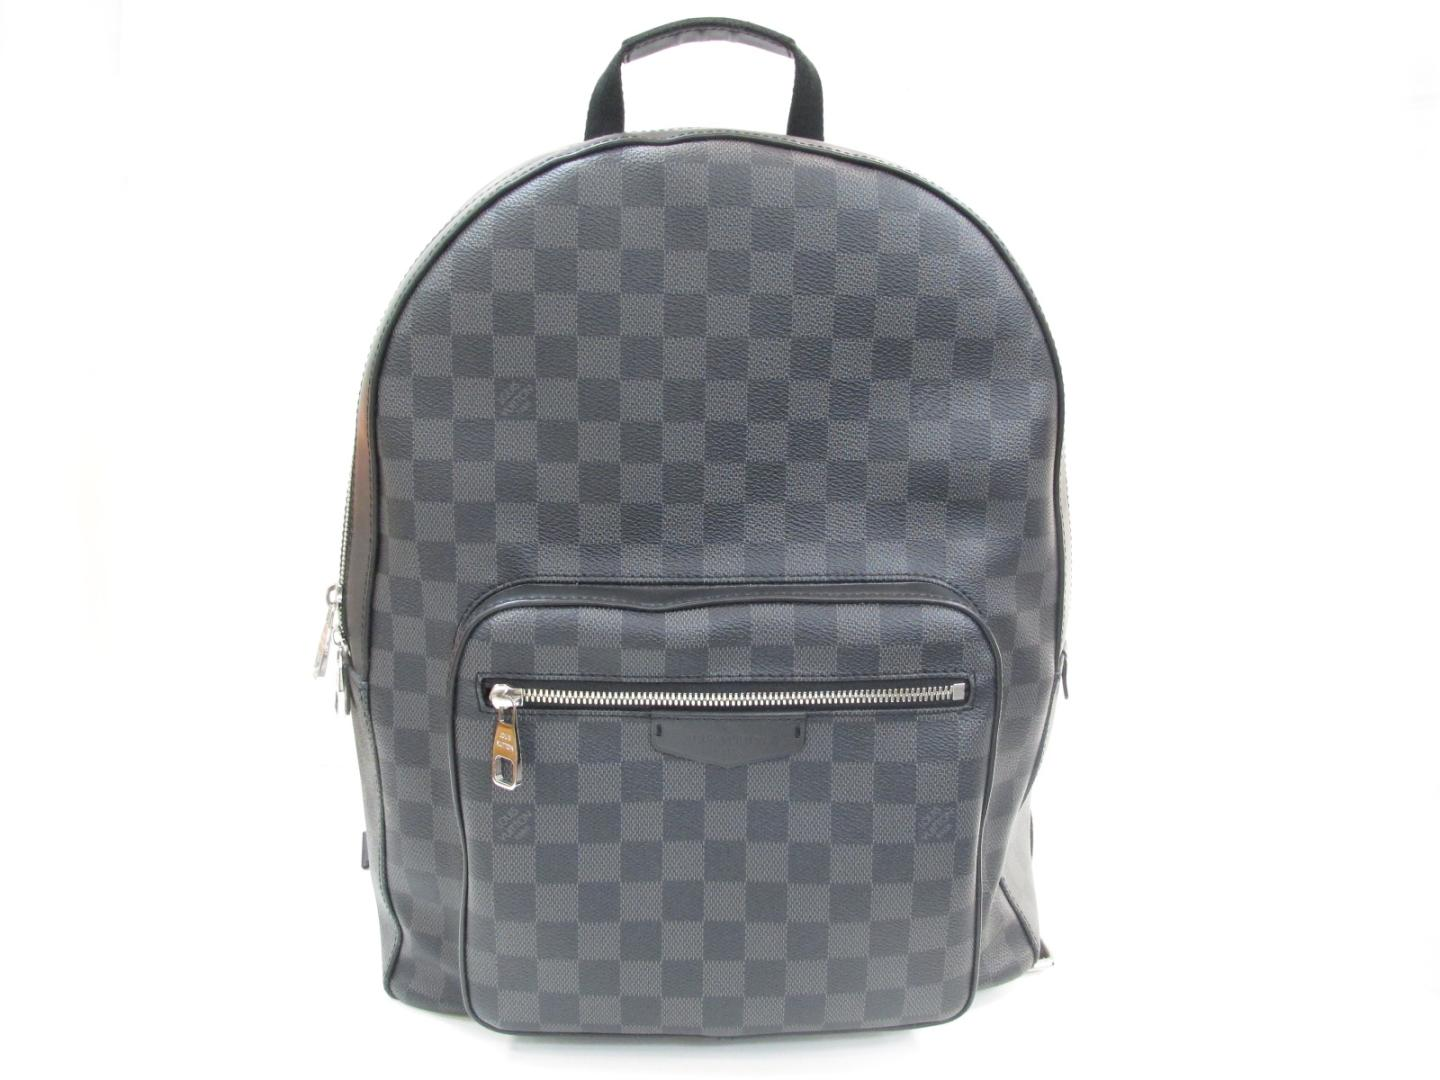 8a4be6501f74 BRANDOFF  Authentic LOUIS VUITTON Josh Backpack Bag Damier Graphite ...